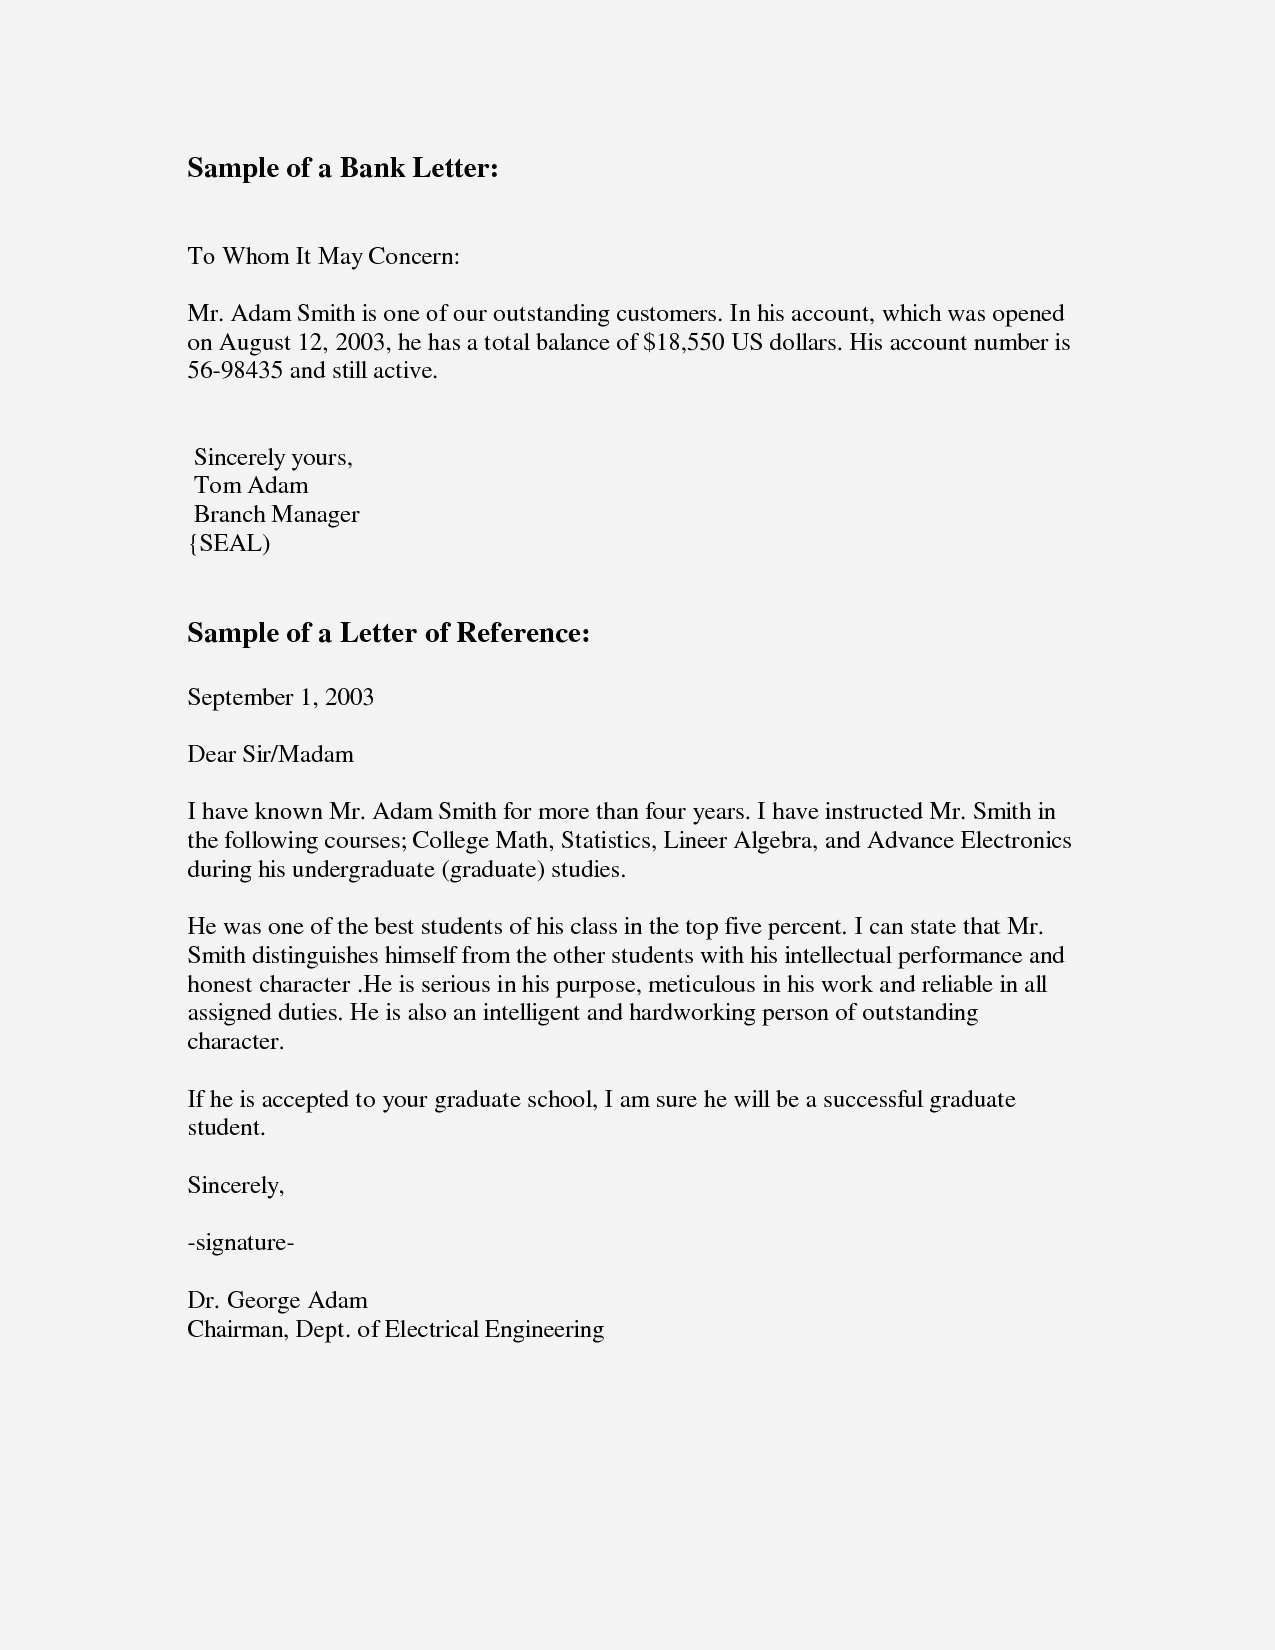 letter of recommendation letter template Collection-Formal Letter Template Unique bylaws Template 0d Wallpapers 50 ficial Letter Template 14-j